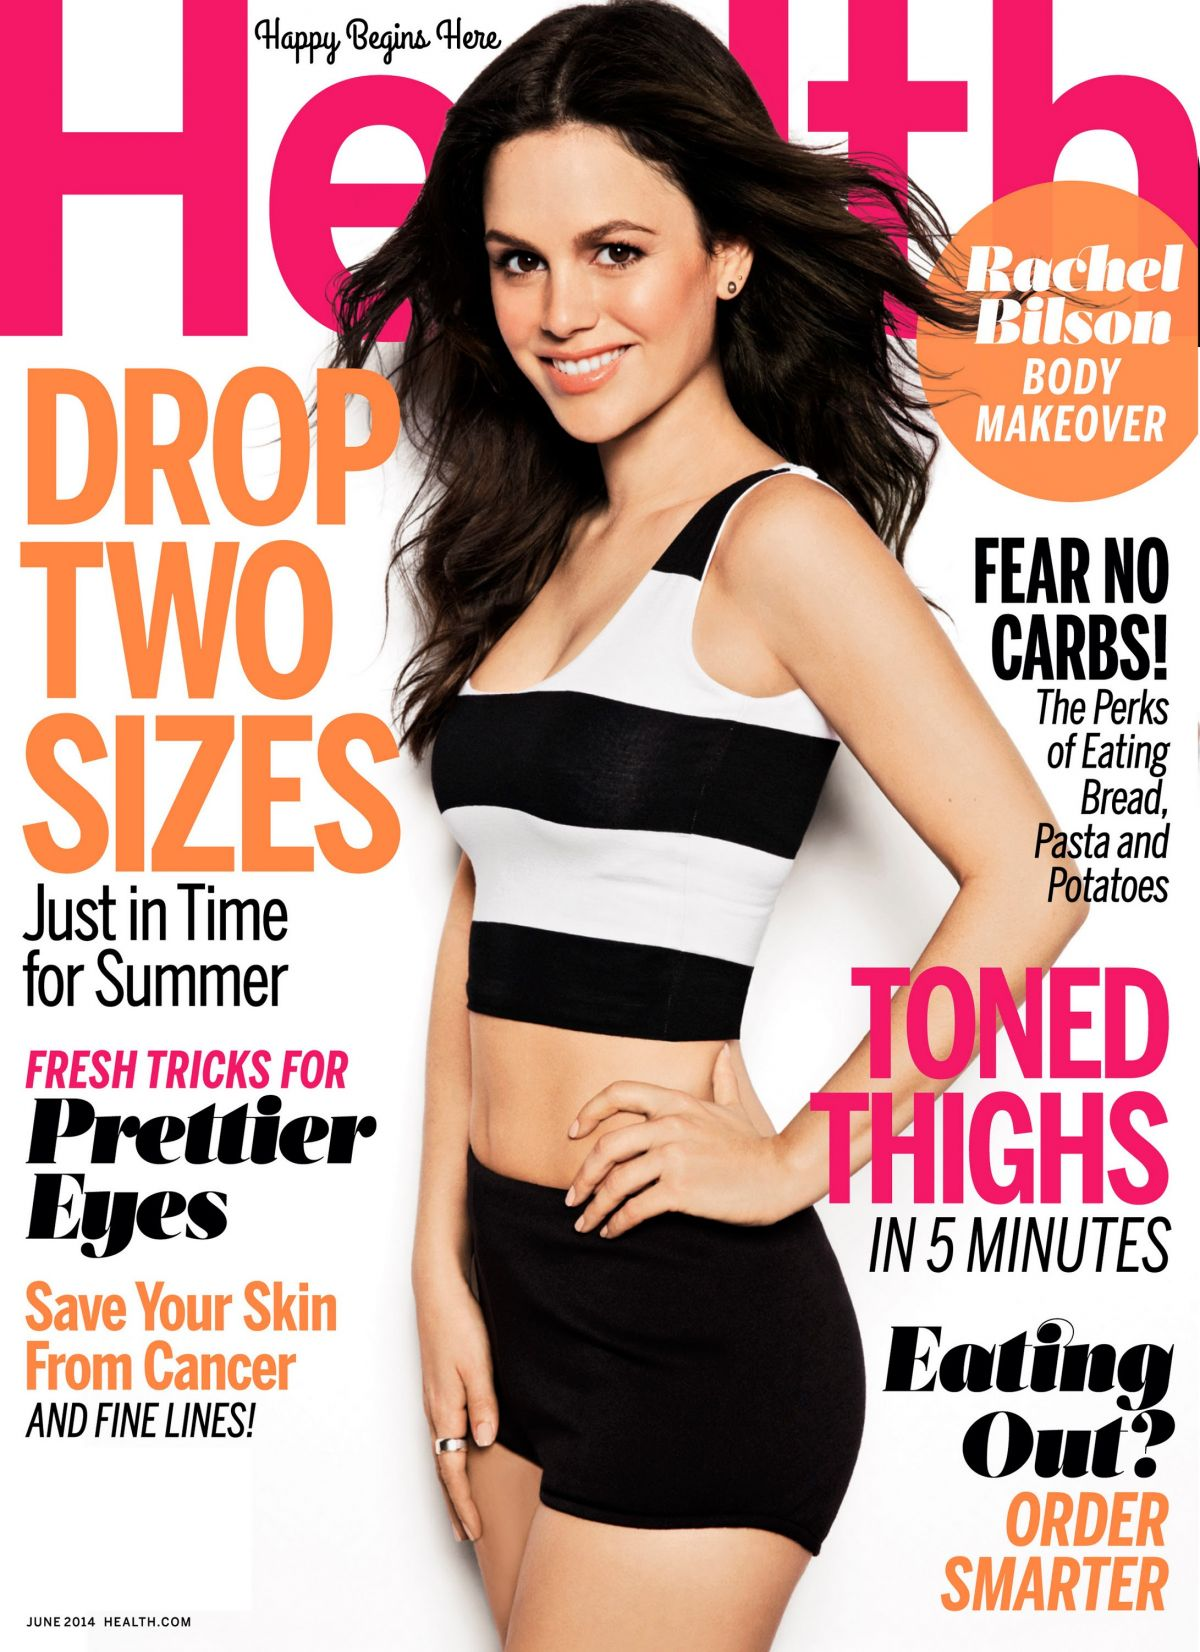 RACHEL BILSON in Health Magazine, June 2014 Issue